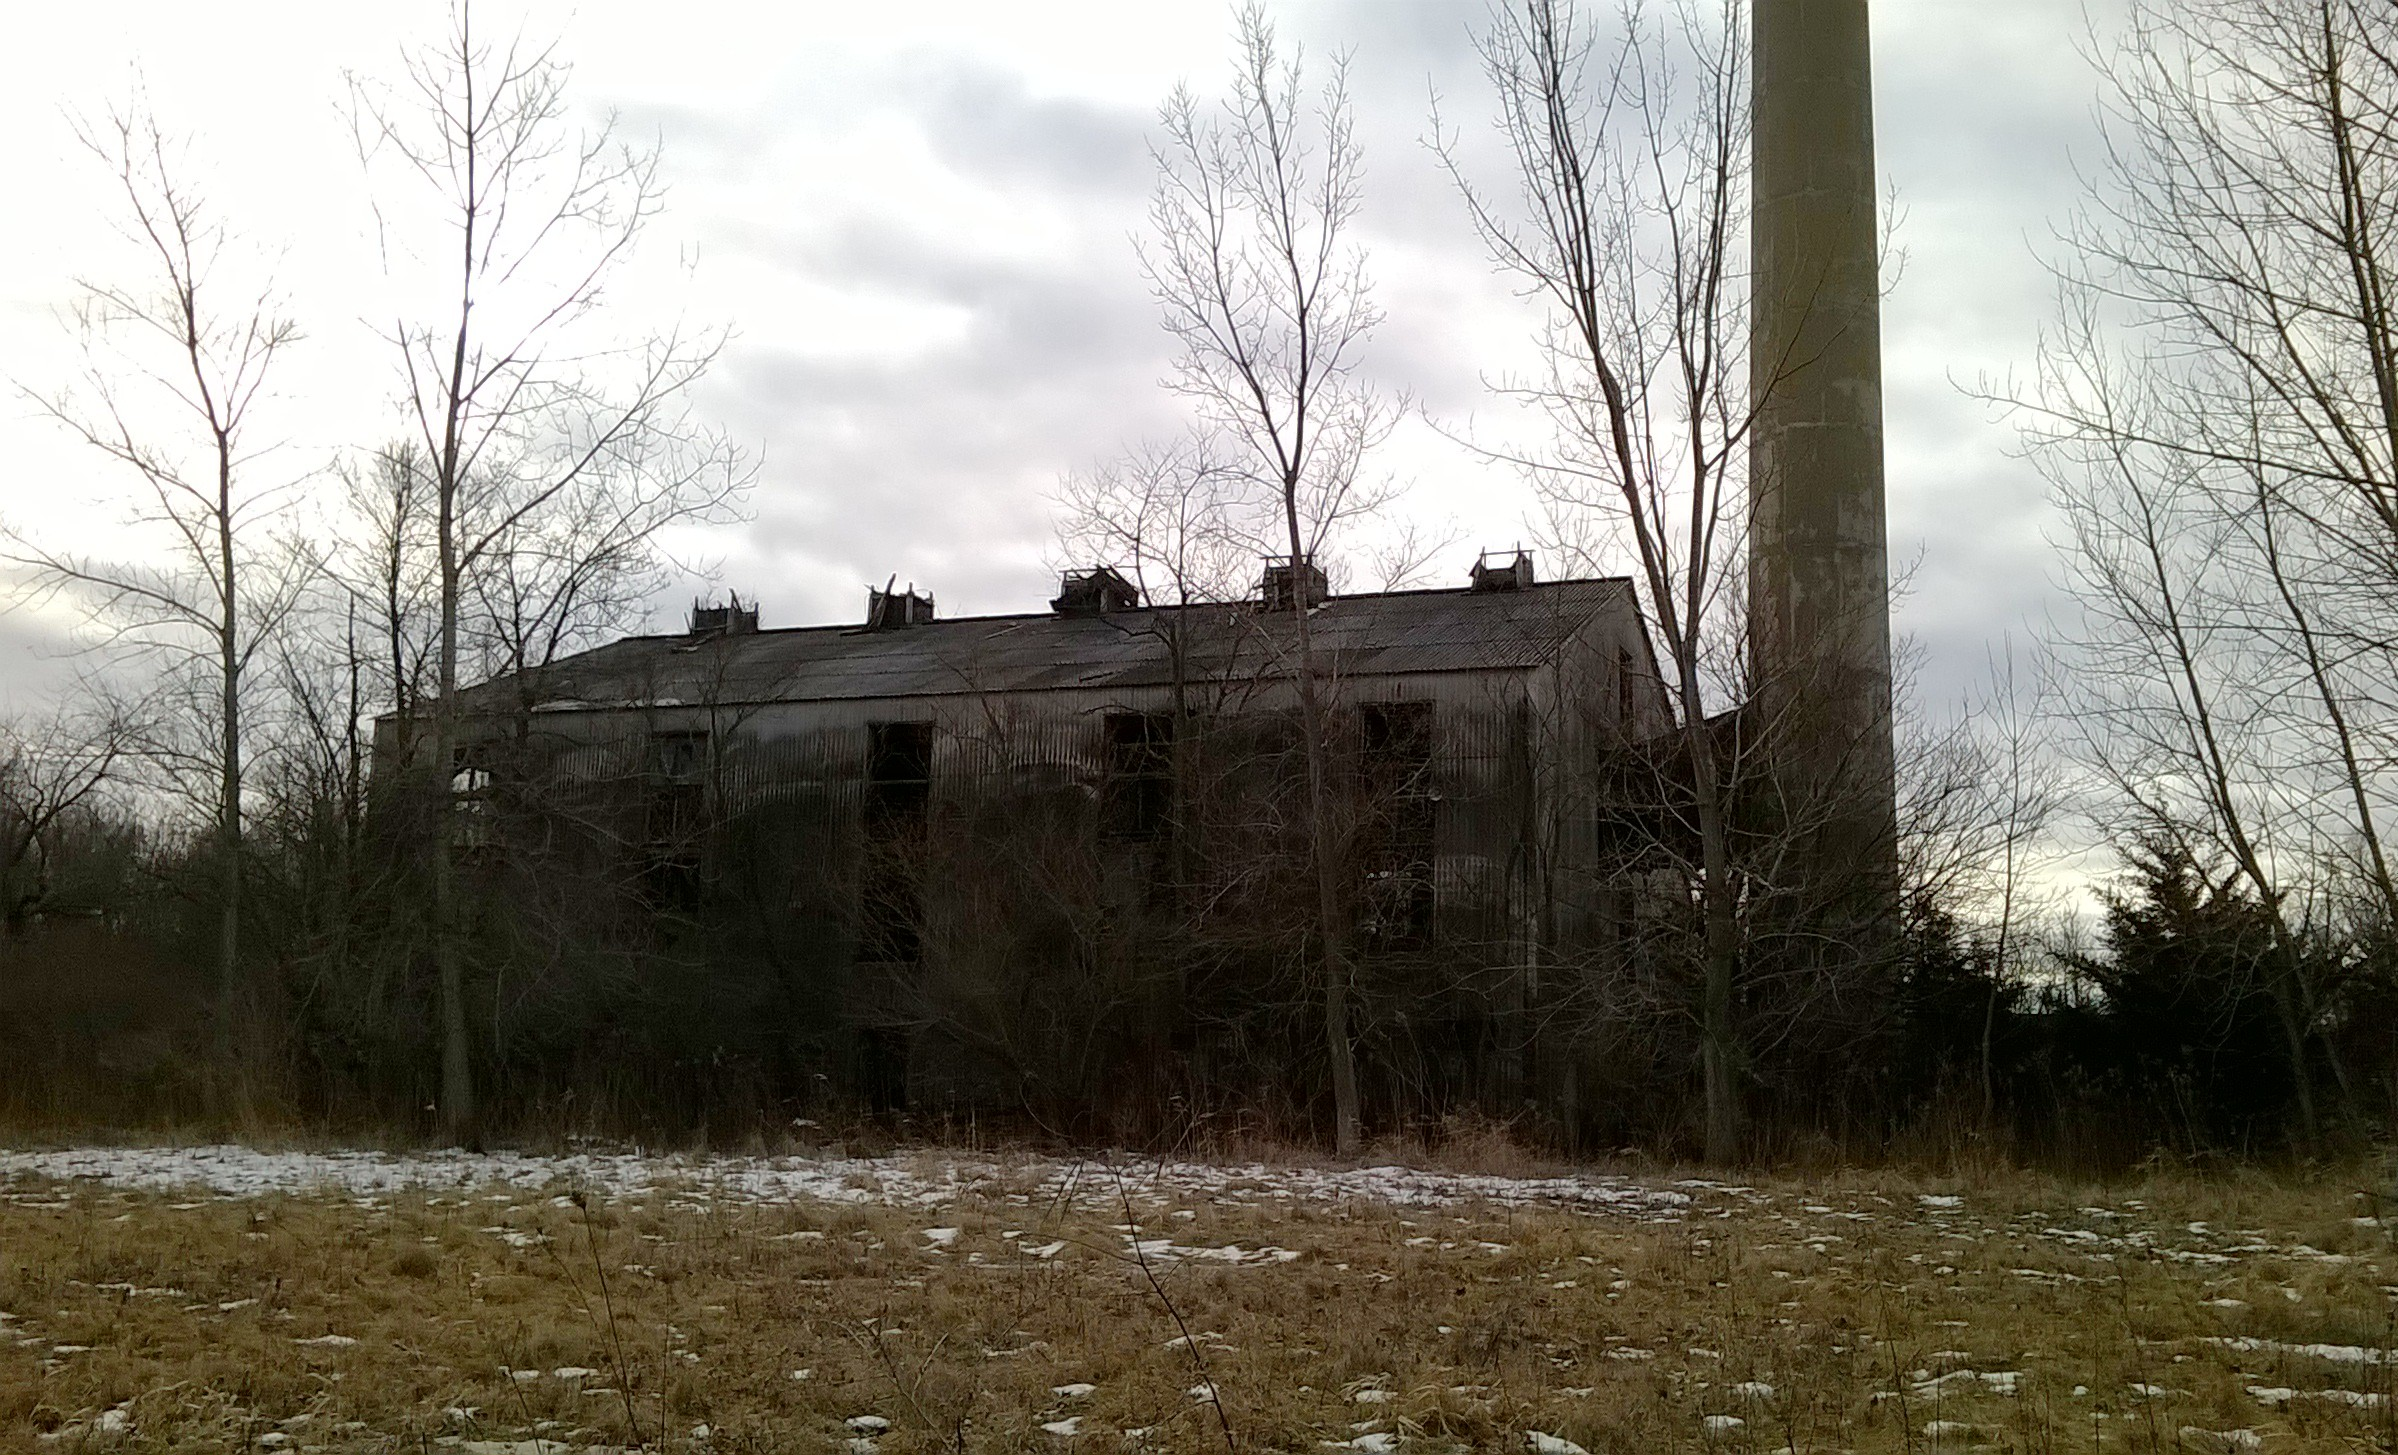 The Factory, Abandoned, Factory, Outdoors, Smokestack, HQ Photo